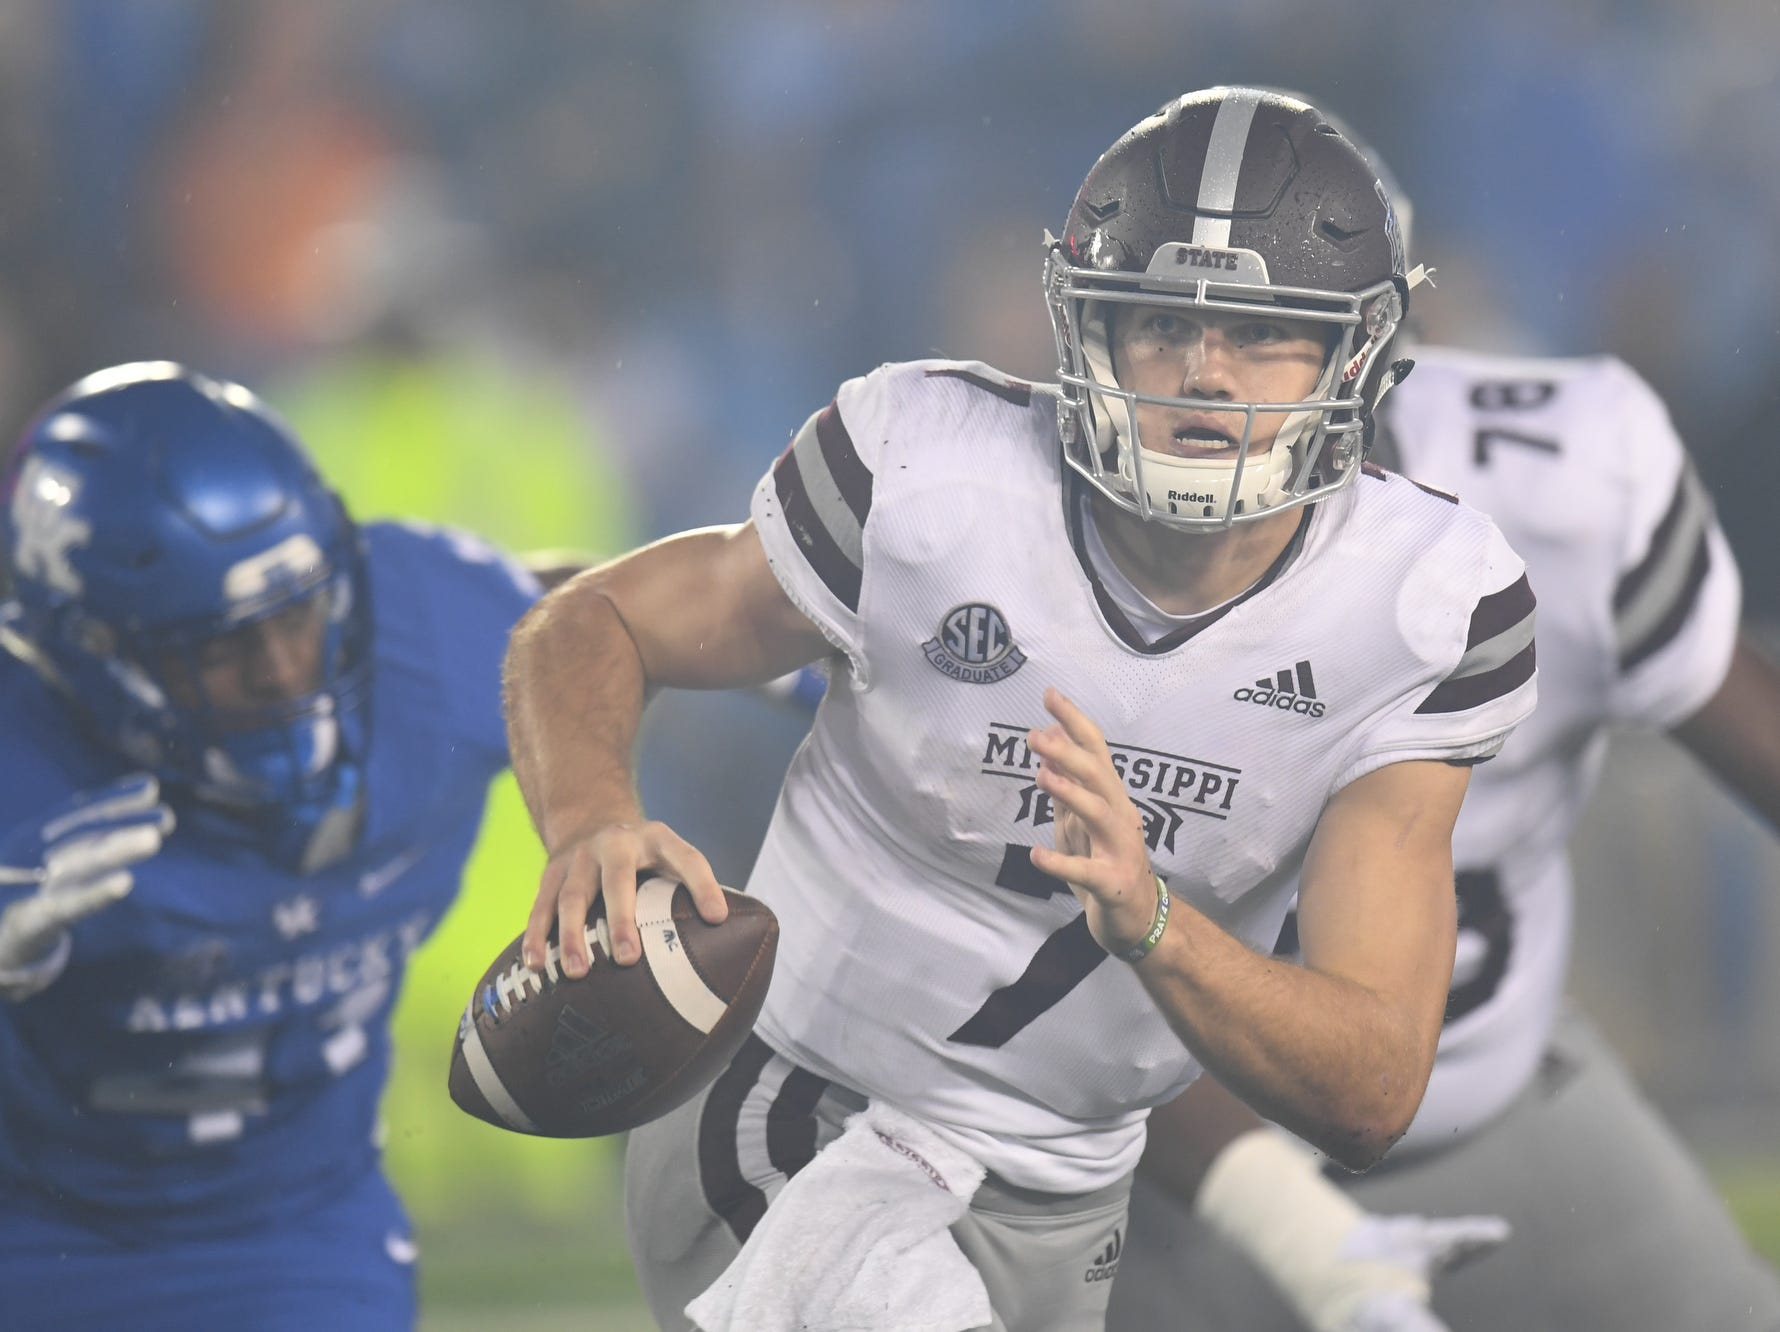 Mississippi State QB Nick during the University of Kentucky football game against Mississippi State at Kroger Field in Lexington, Kentucky on Saturday, September 22, 2018.